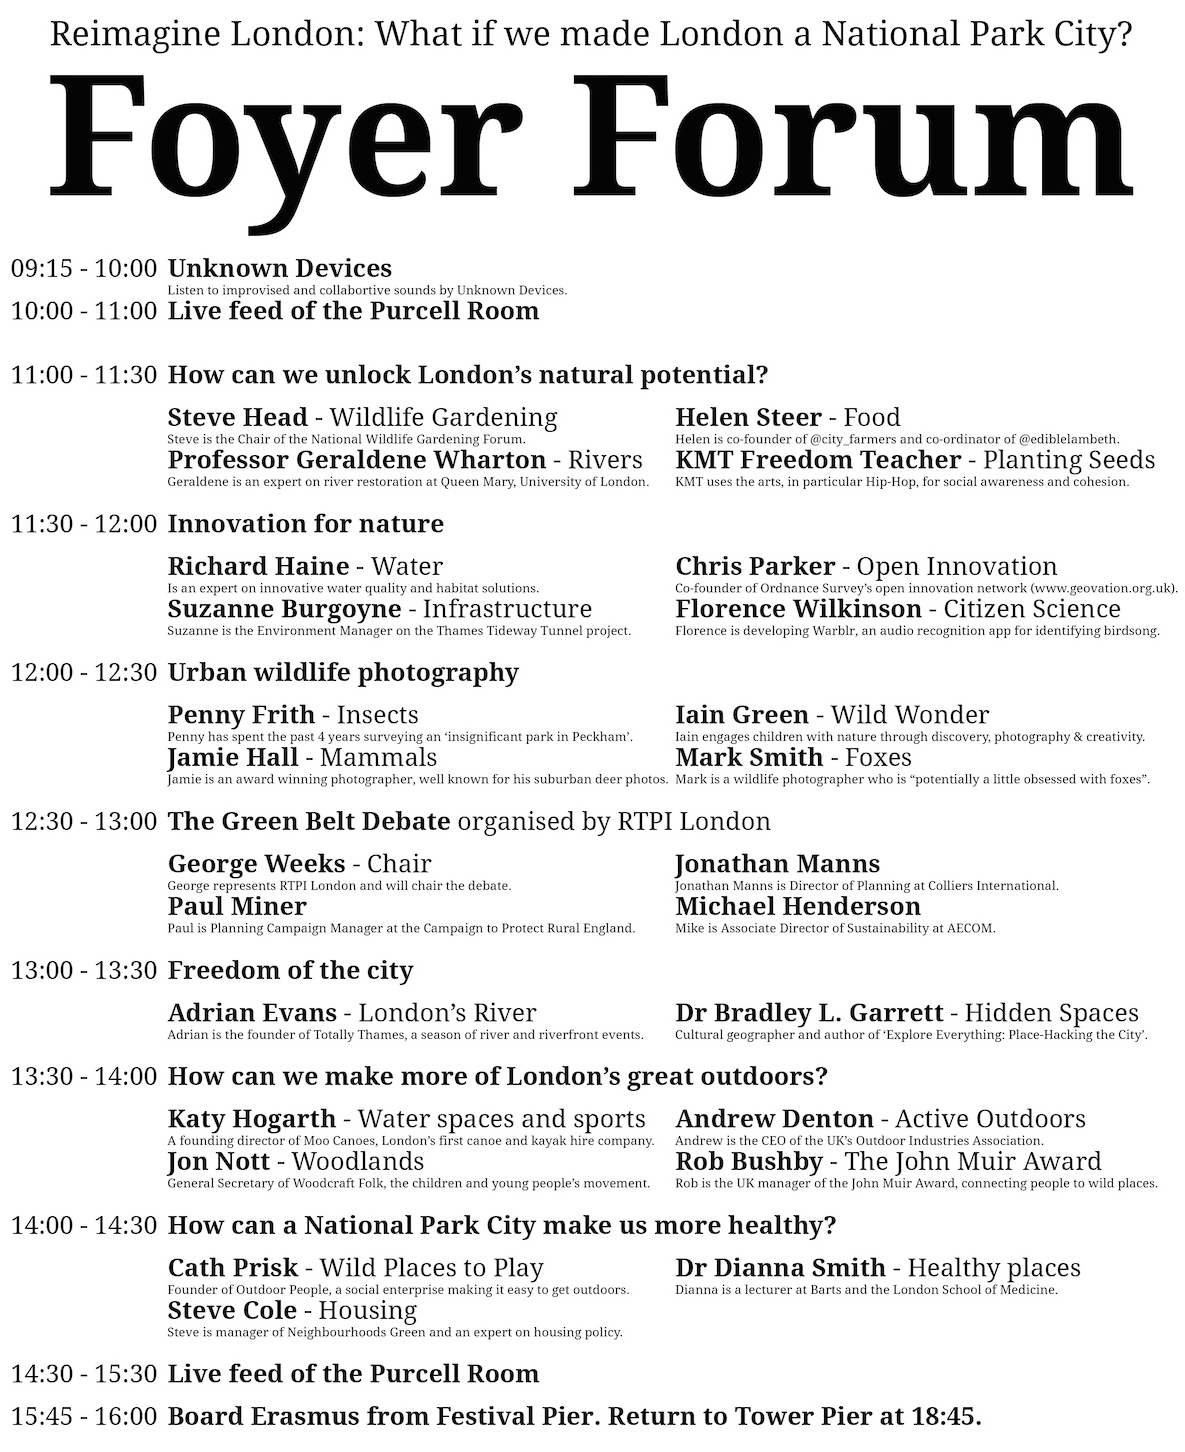 Foyer Forum